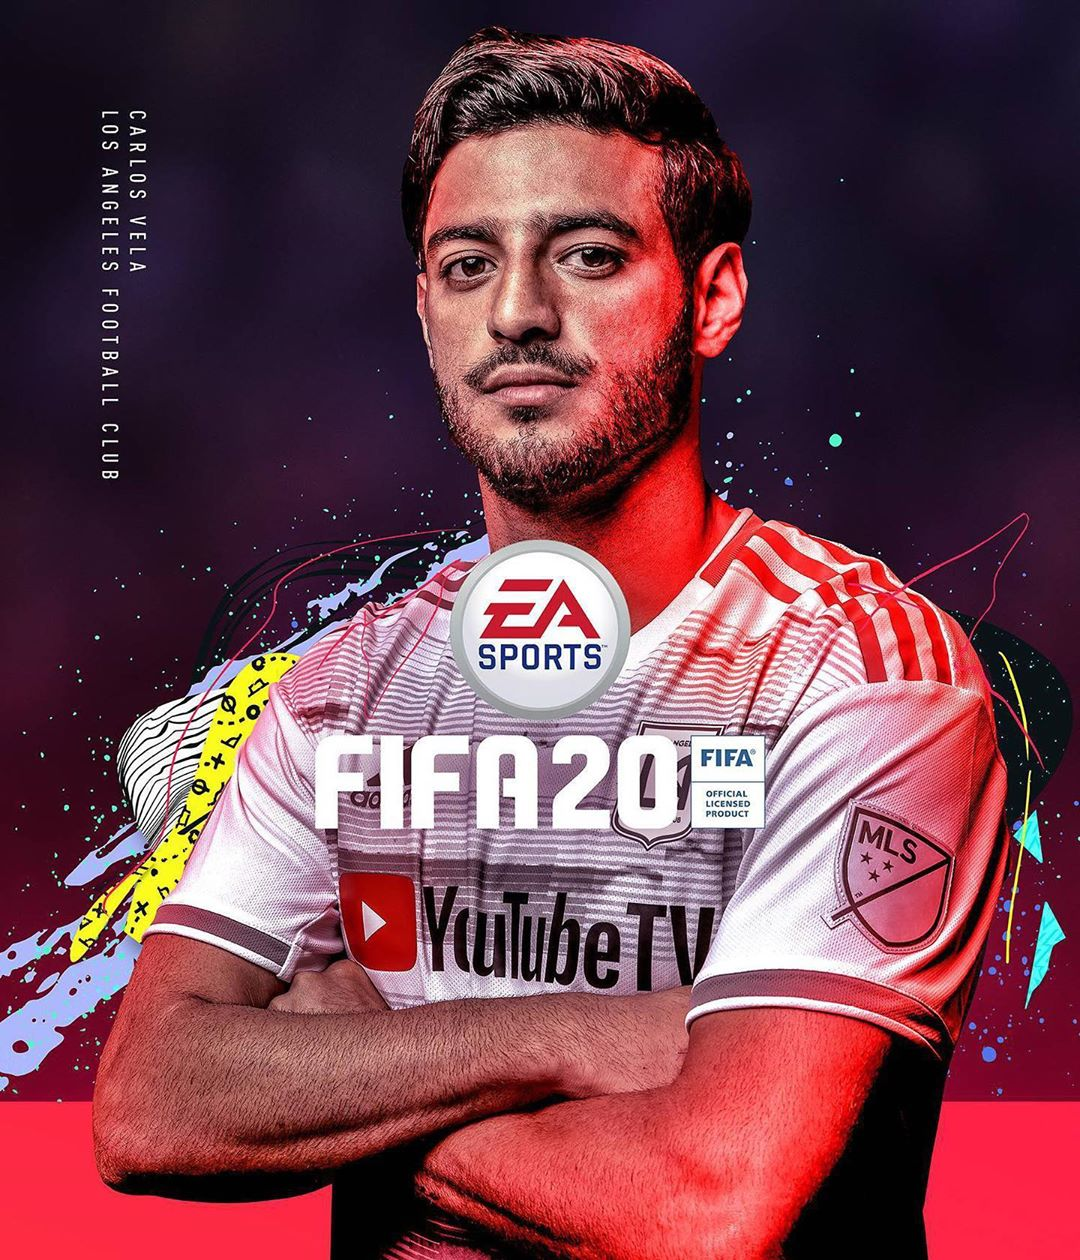 Username: JustKickinit86  When people ask if I play video games?! I literally own one game and it's FIFA, year after year even if I don't have time to play it's a must purchase for me 🙂 Find me on Xbox Live at any random time but 1am to 3am is probably the best timeframe   Username: JustKickinit86